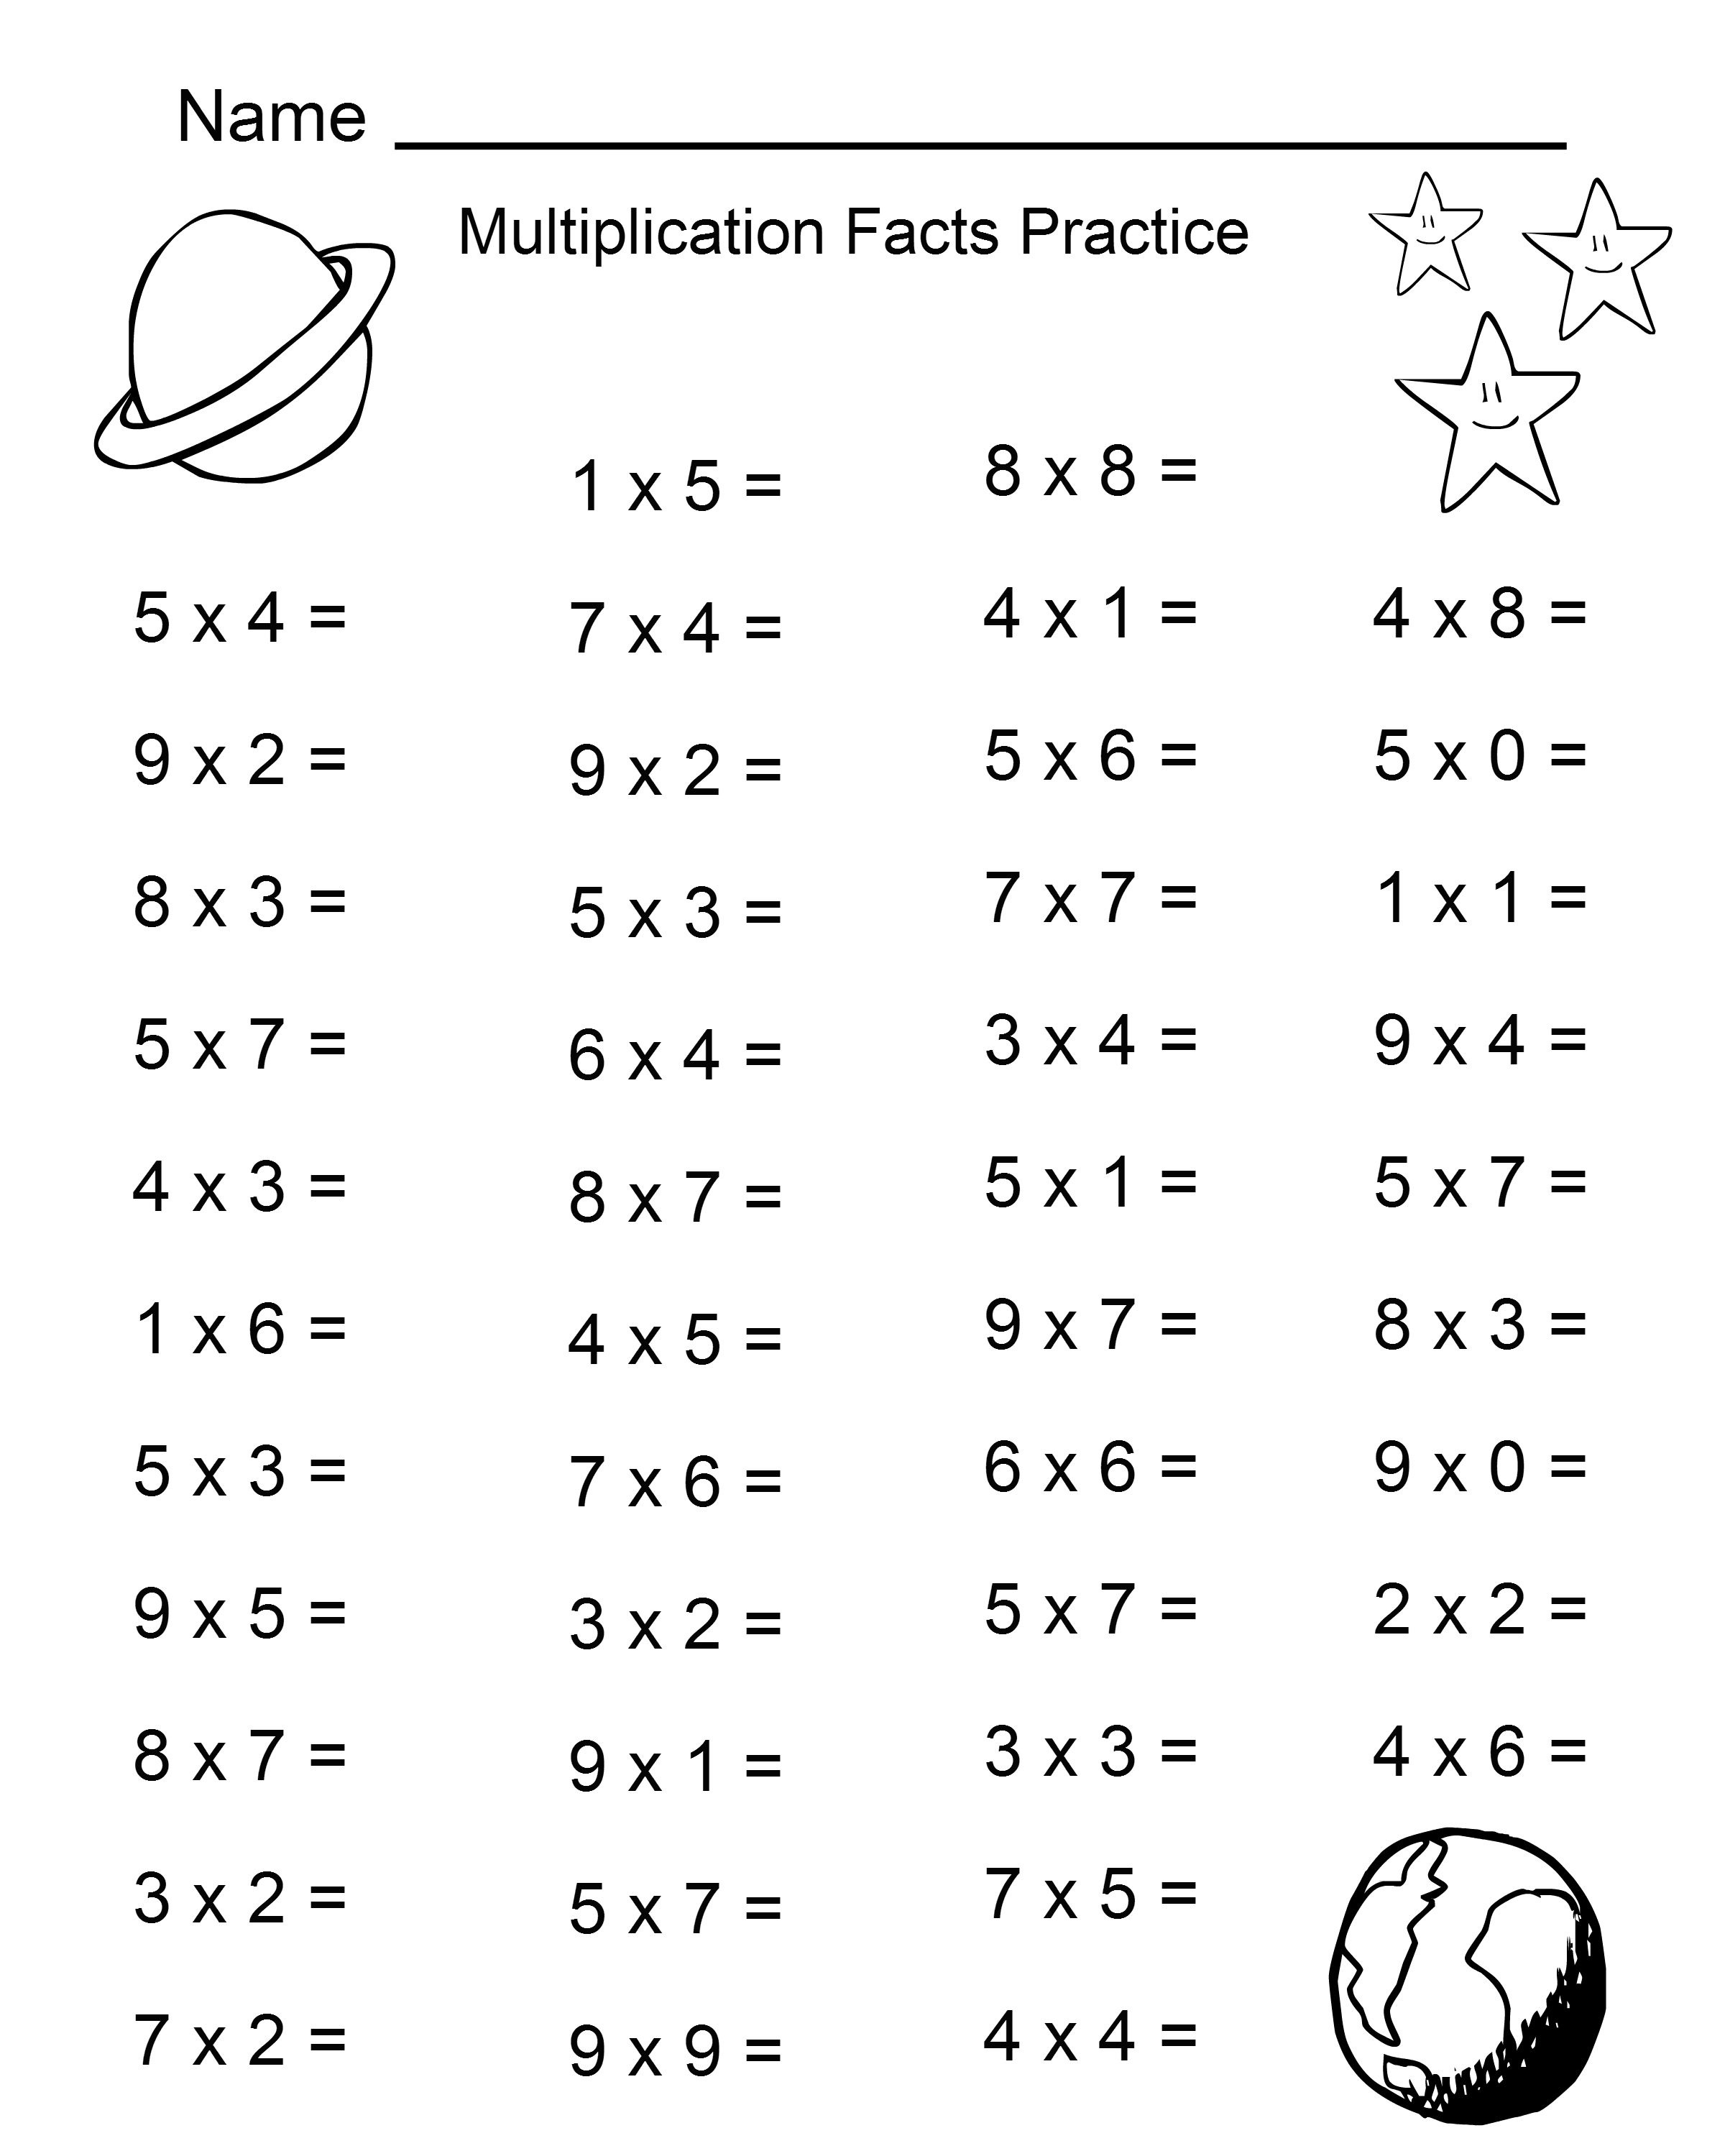 Space Theme - 4Th Grade Math Practice Sheets - Multiplication Facts - Free Printable Multiplication Worksheets For 4Th Grade